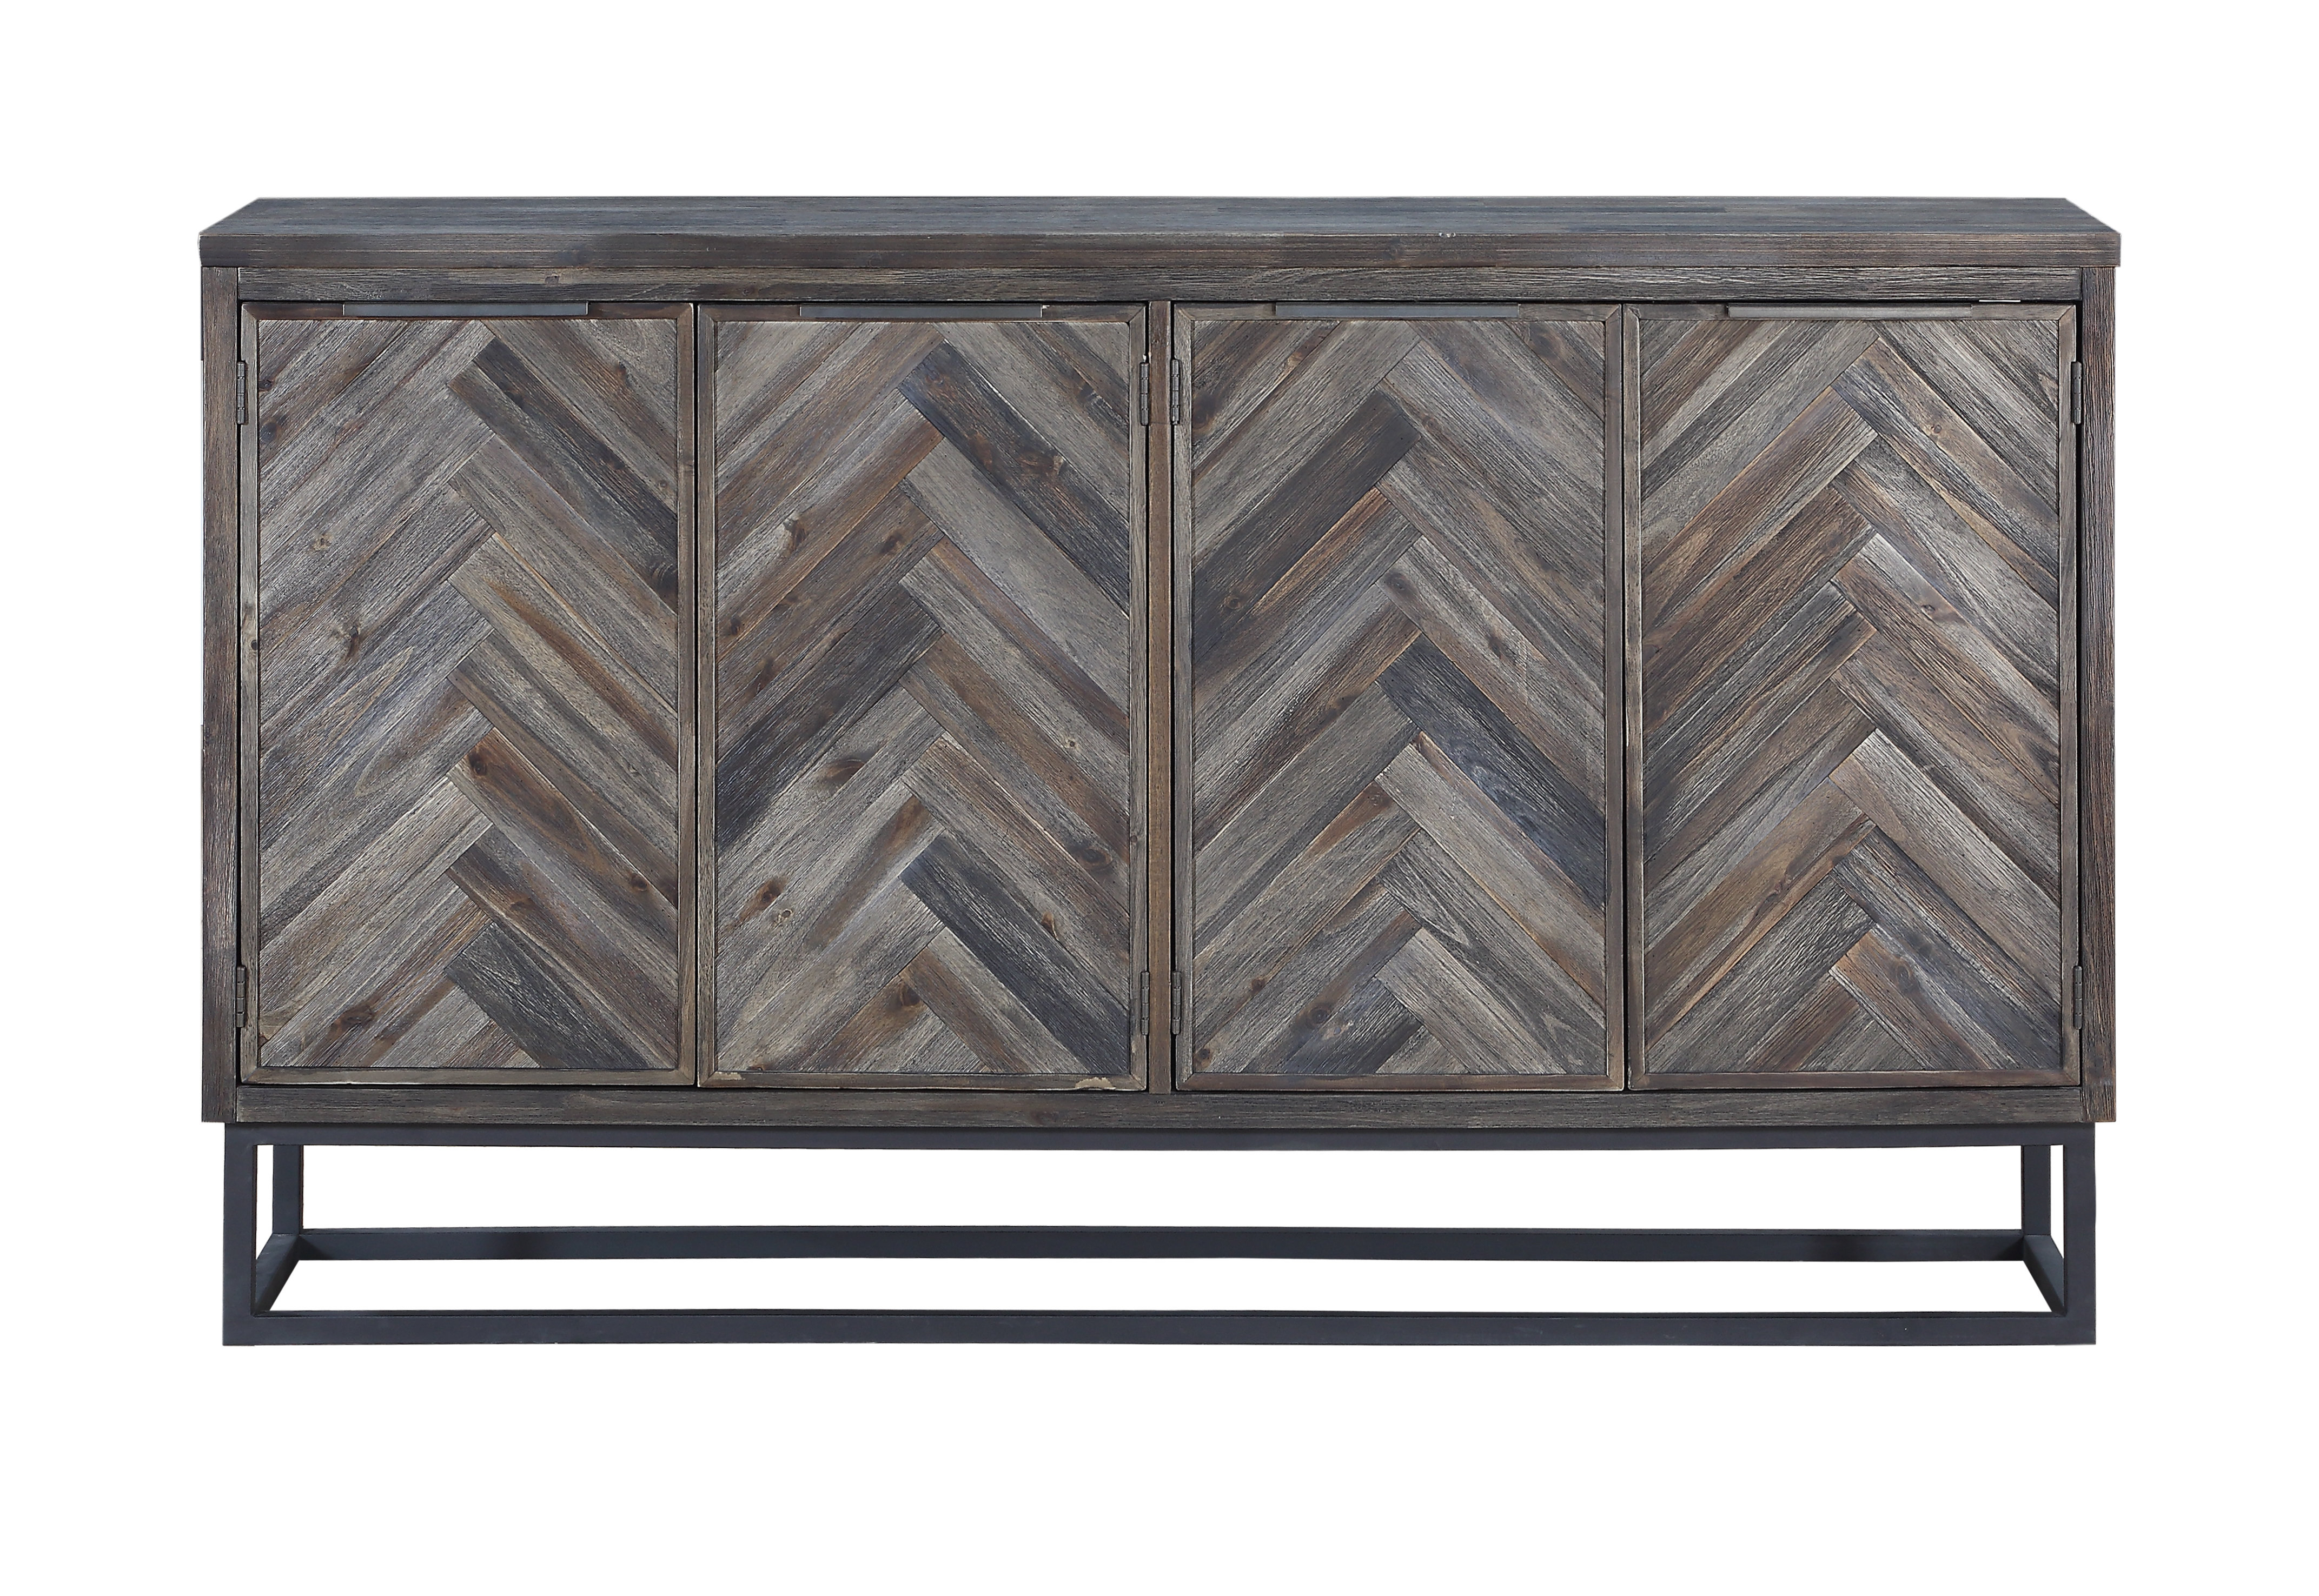 Inspiration about Modern Metal Sideboards + Buffets | Allmodern Regarding Most Current Malibu 2 Door 4 Drawer Sideboards (#12 of 20)